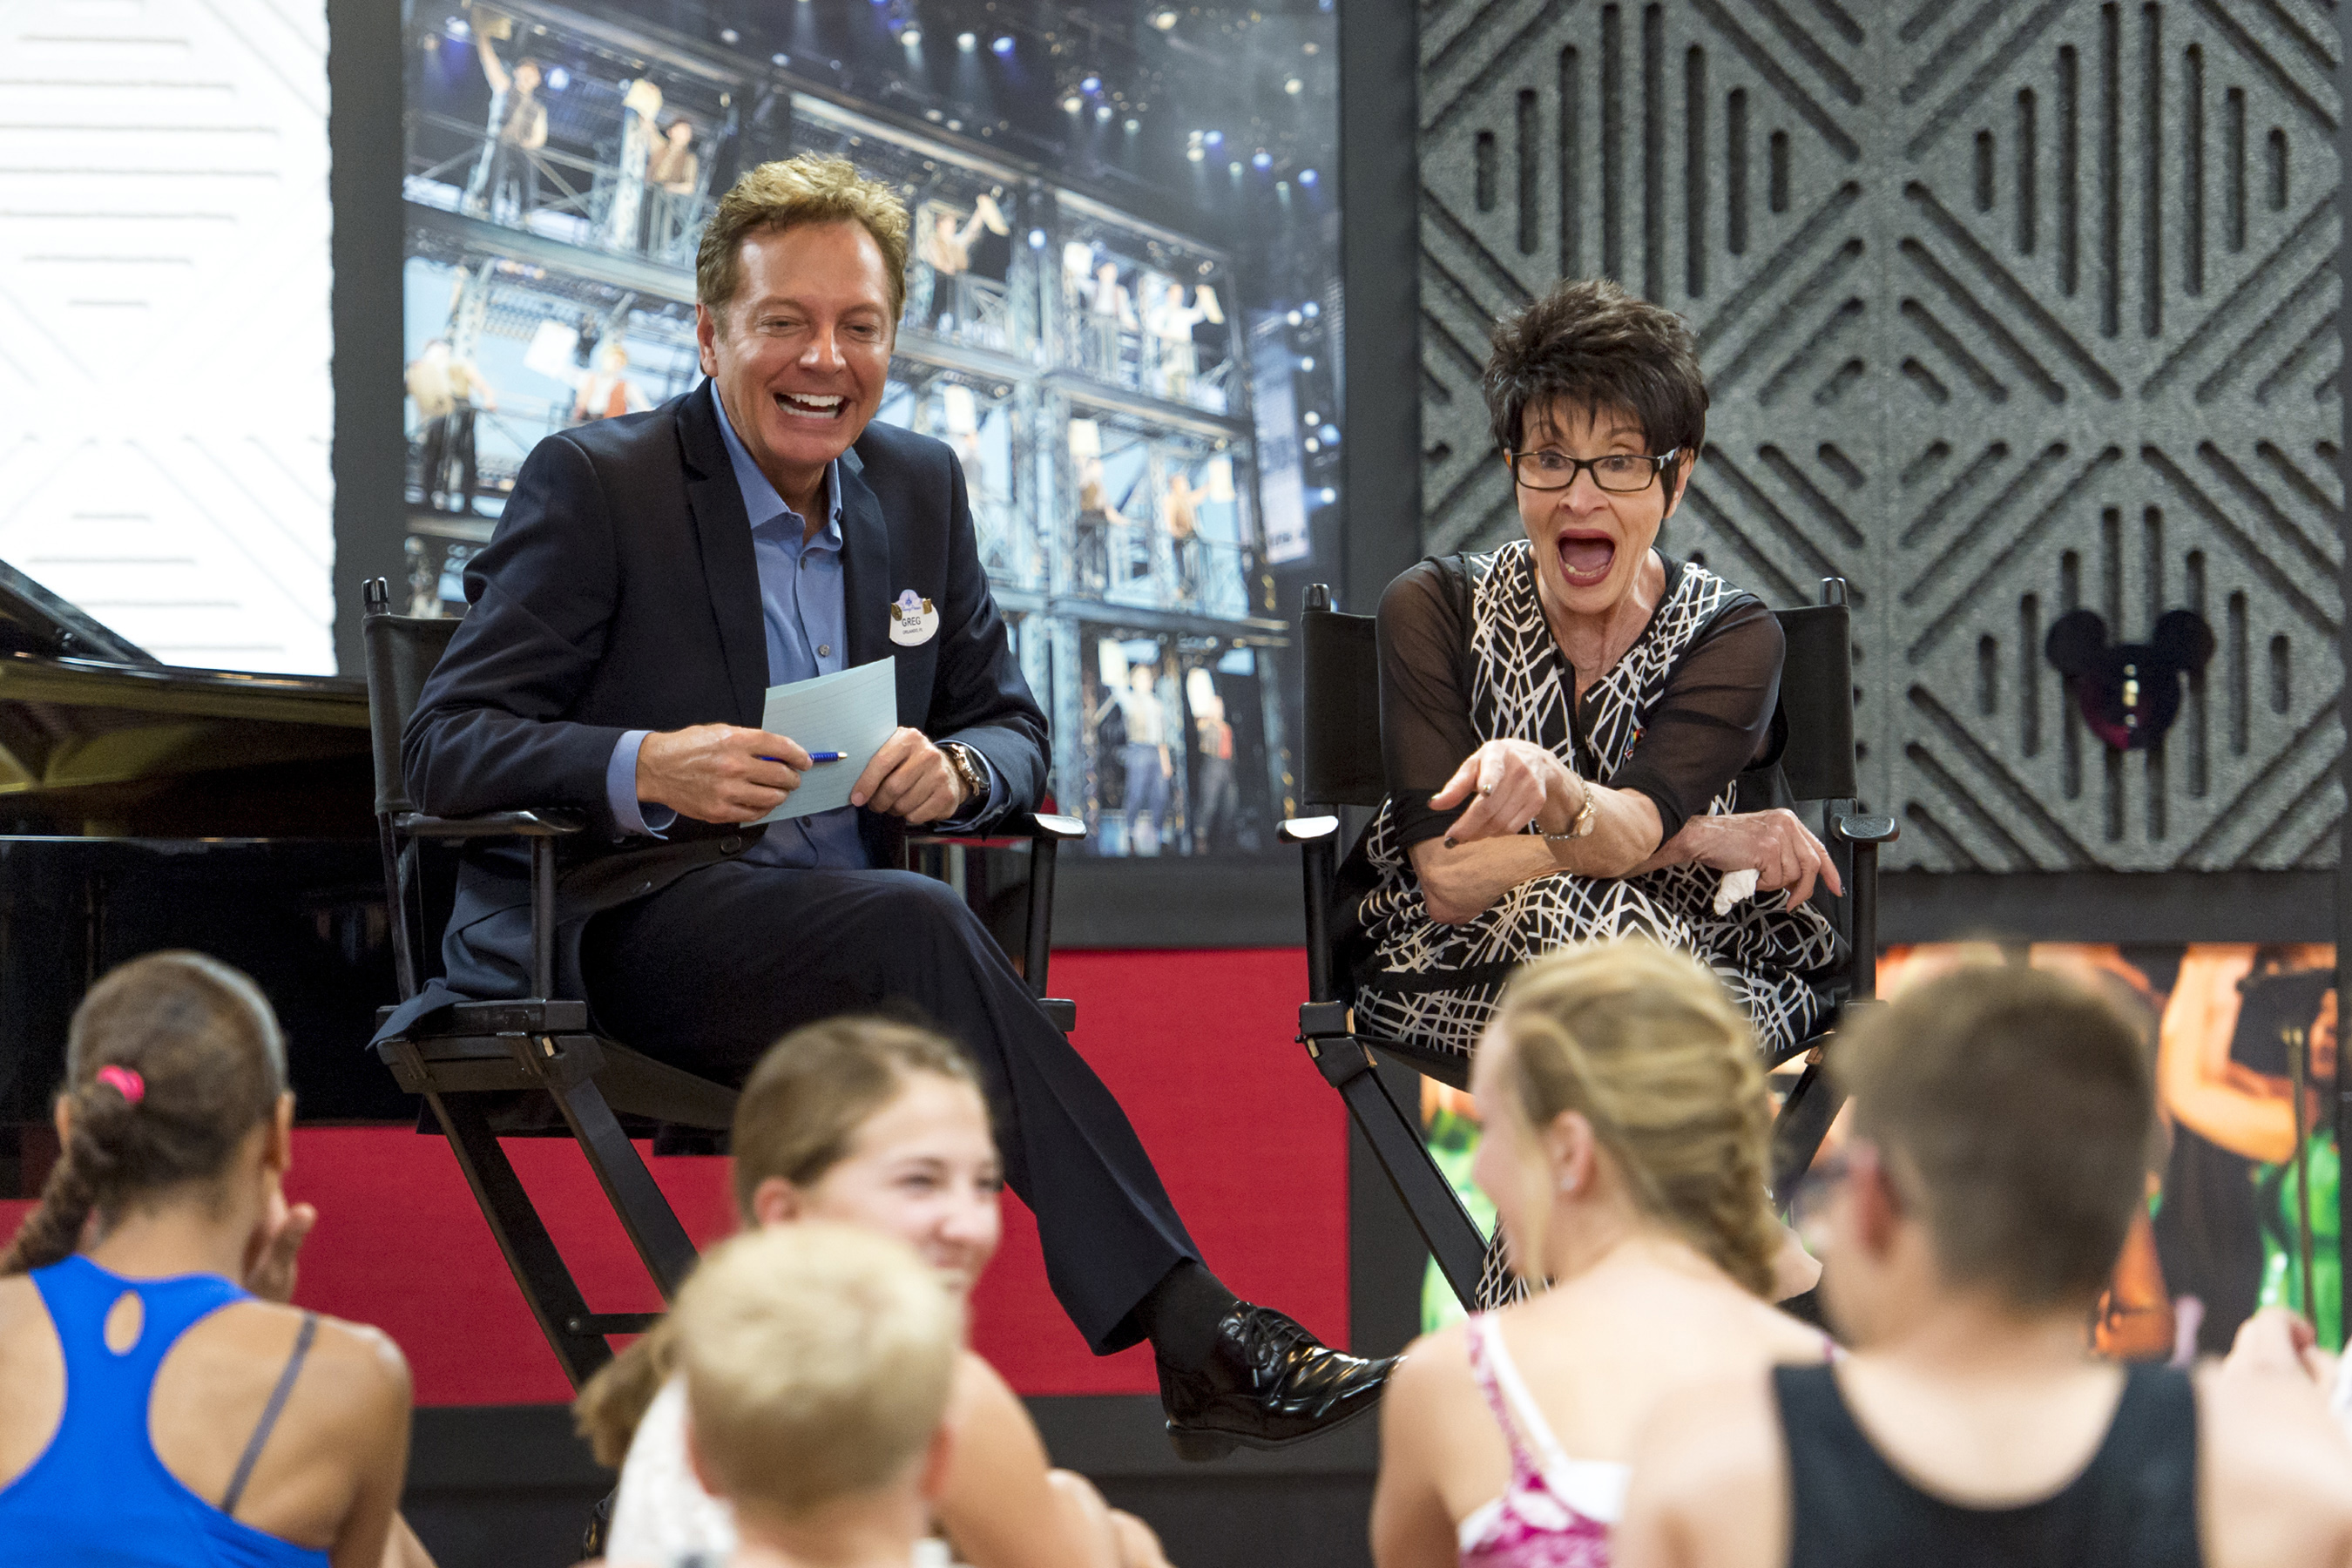 Chita Rivera and Greg Bell Discussing Rivera's Musical Career